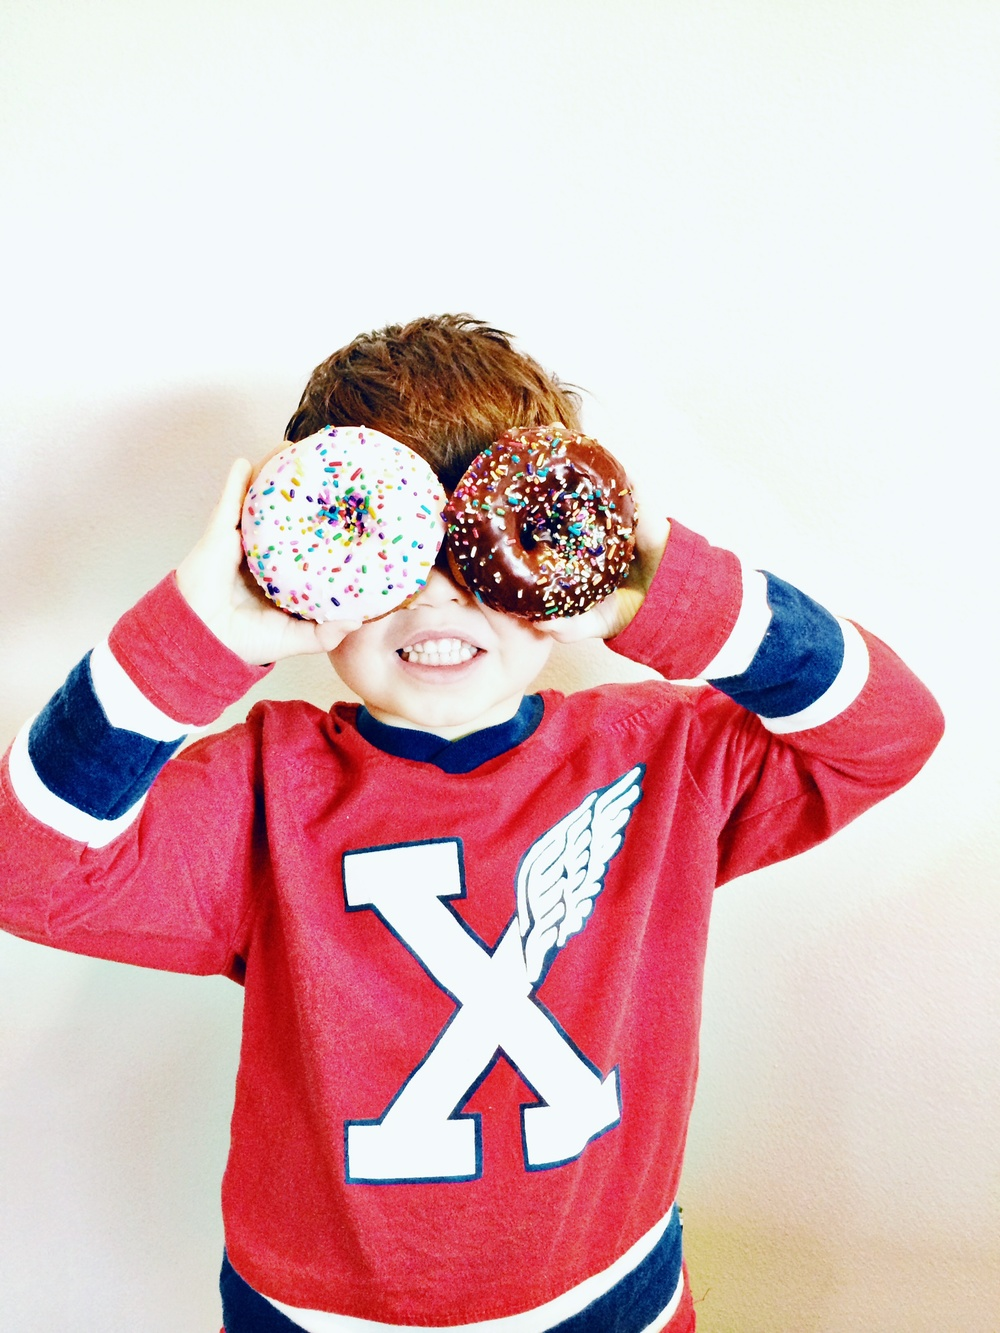 Zmax is our doughnut king.